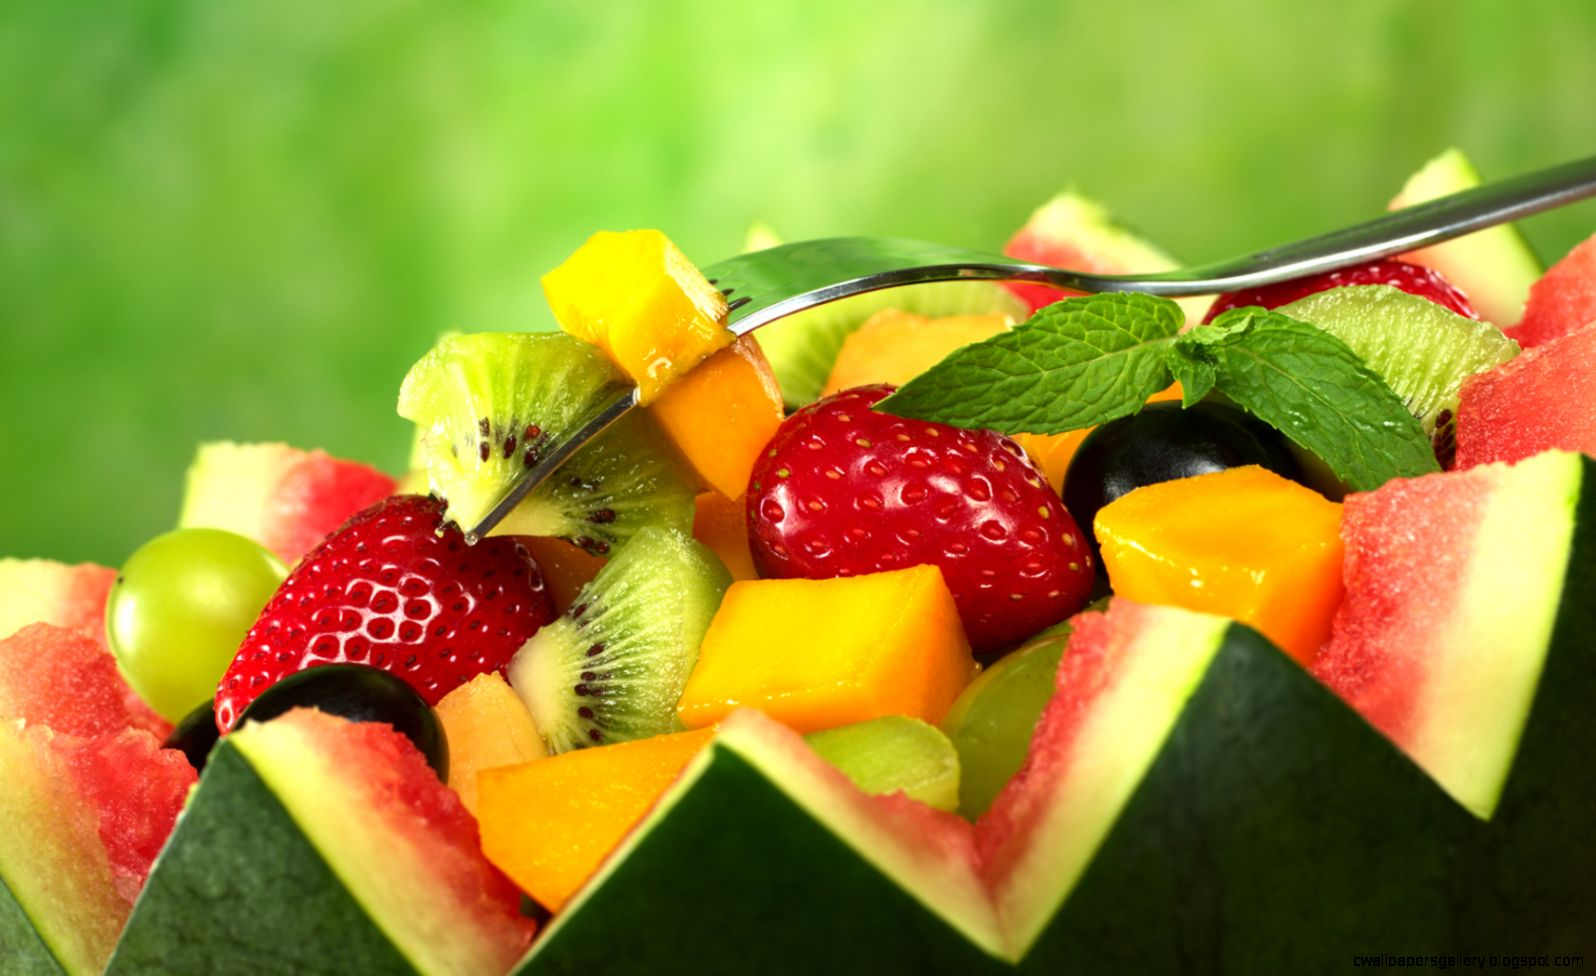 Free Download fresh fruit salad Wallpaper in 1680x1050 resolutions